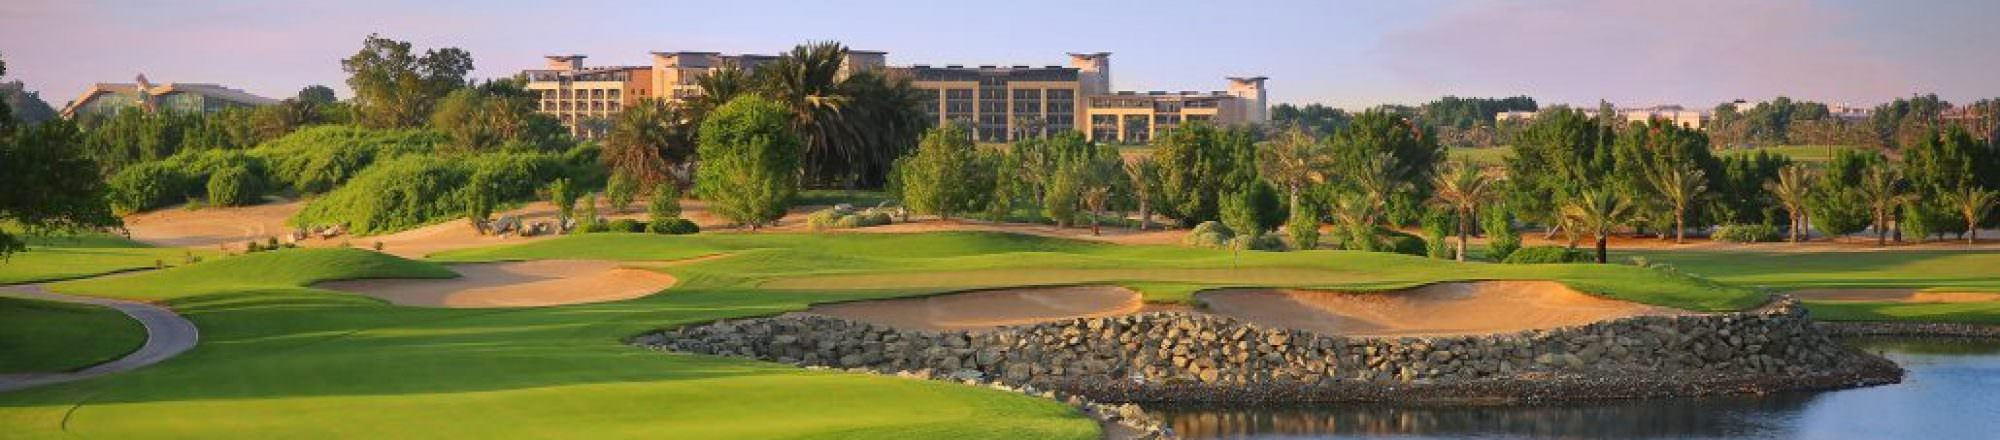 A year in golf travel: An Abu Dhabi debut and Royal North Devon in Portugal?